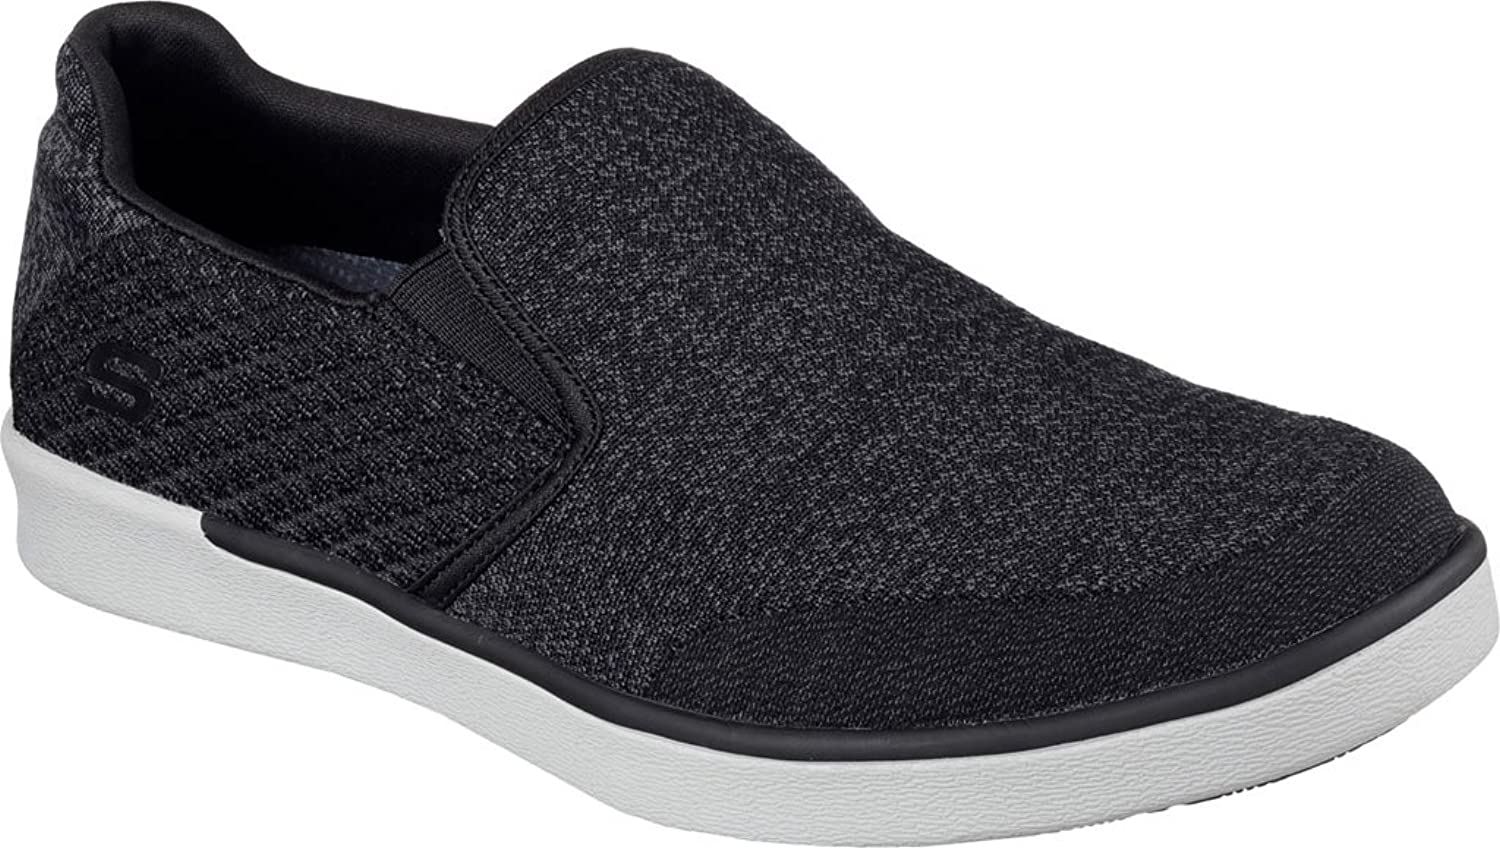 Skechers Men's Boyar Meber SlipOn Sneaker